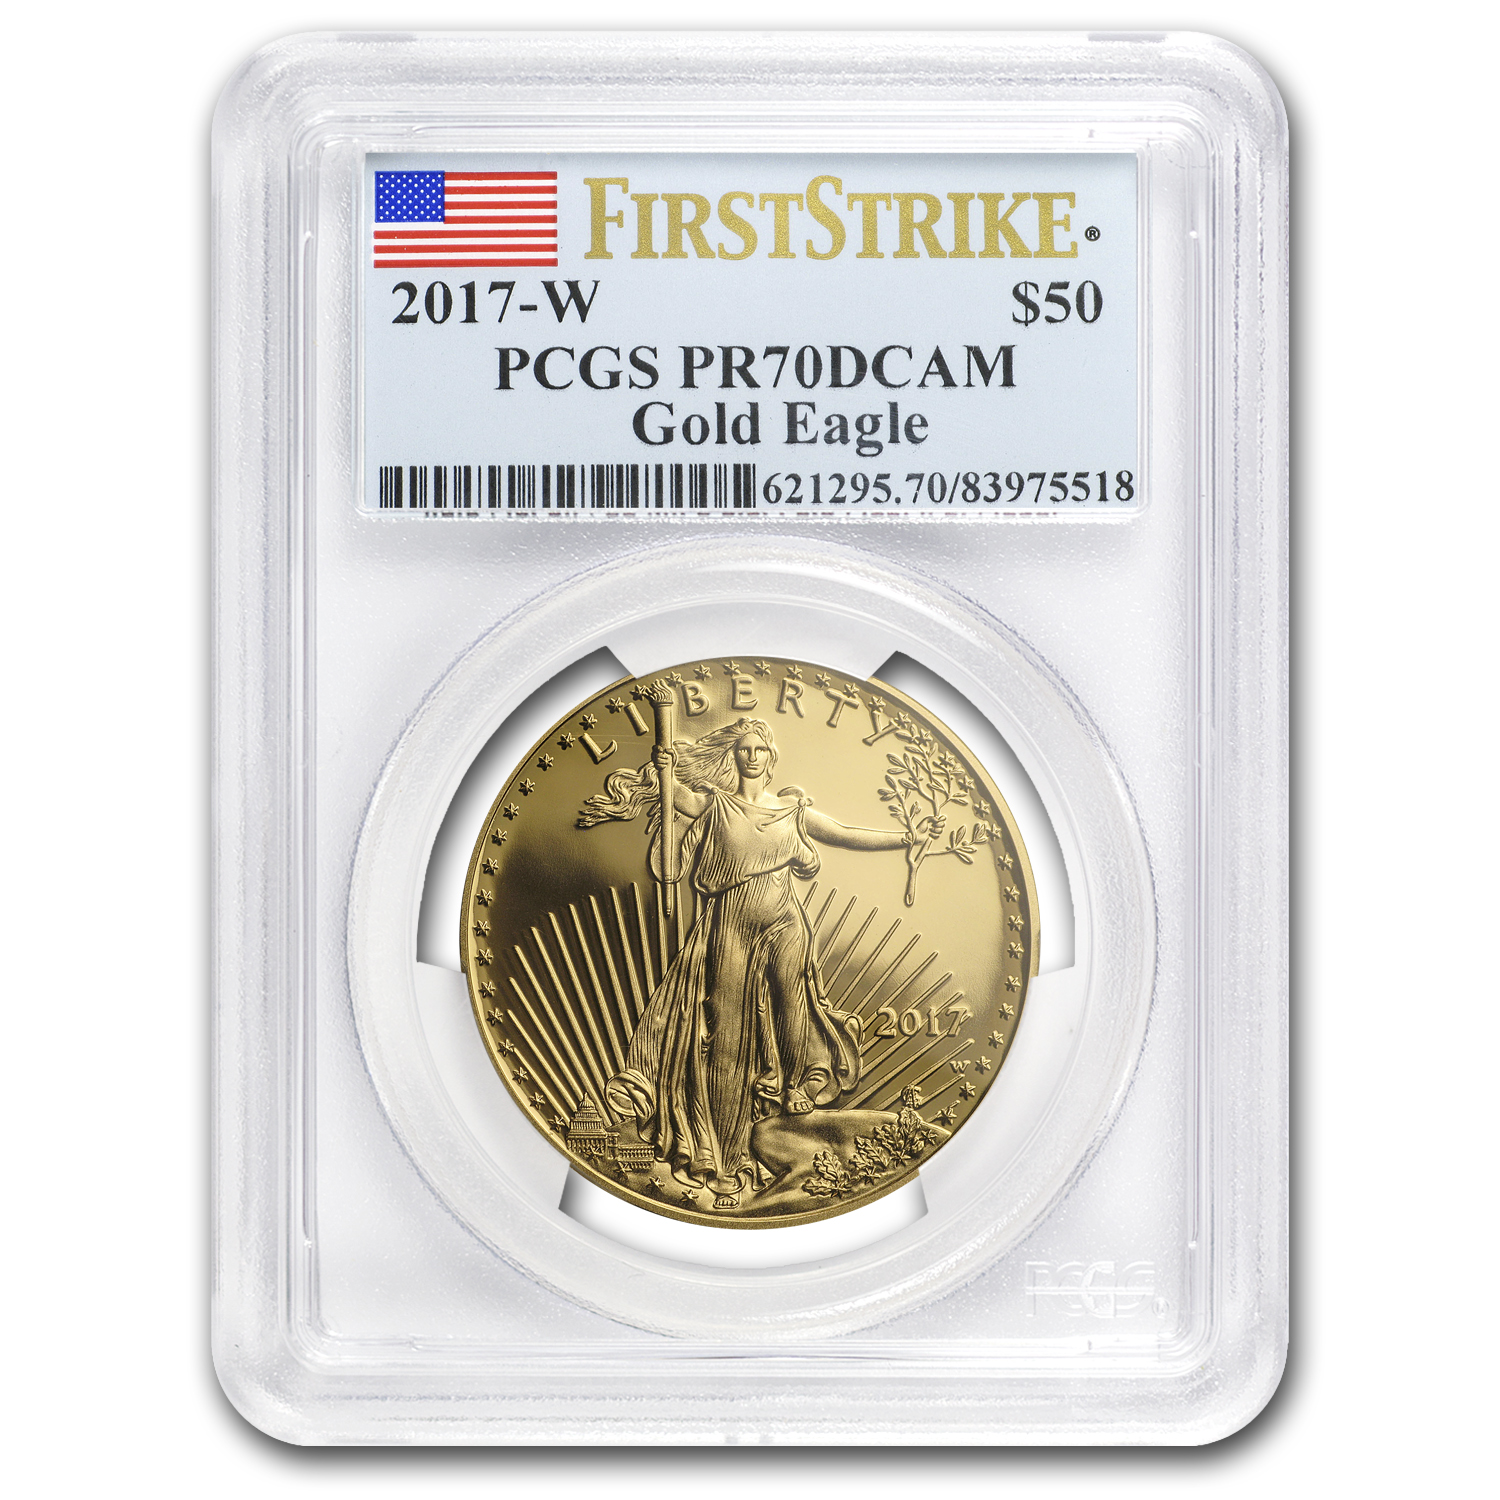 2017-W 1 oz Proof Gold American Eagle PR-70 PCGS (FS)